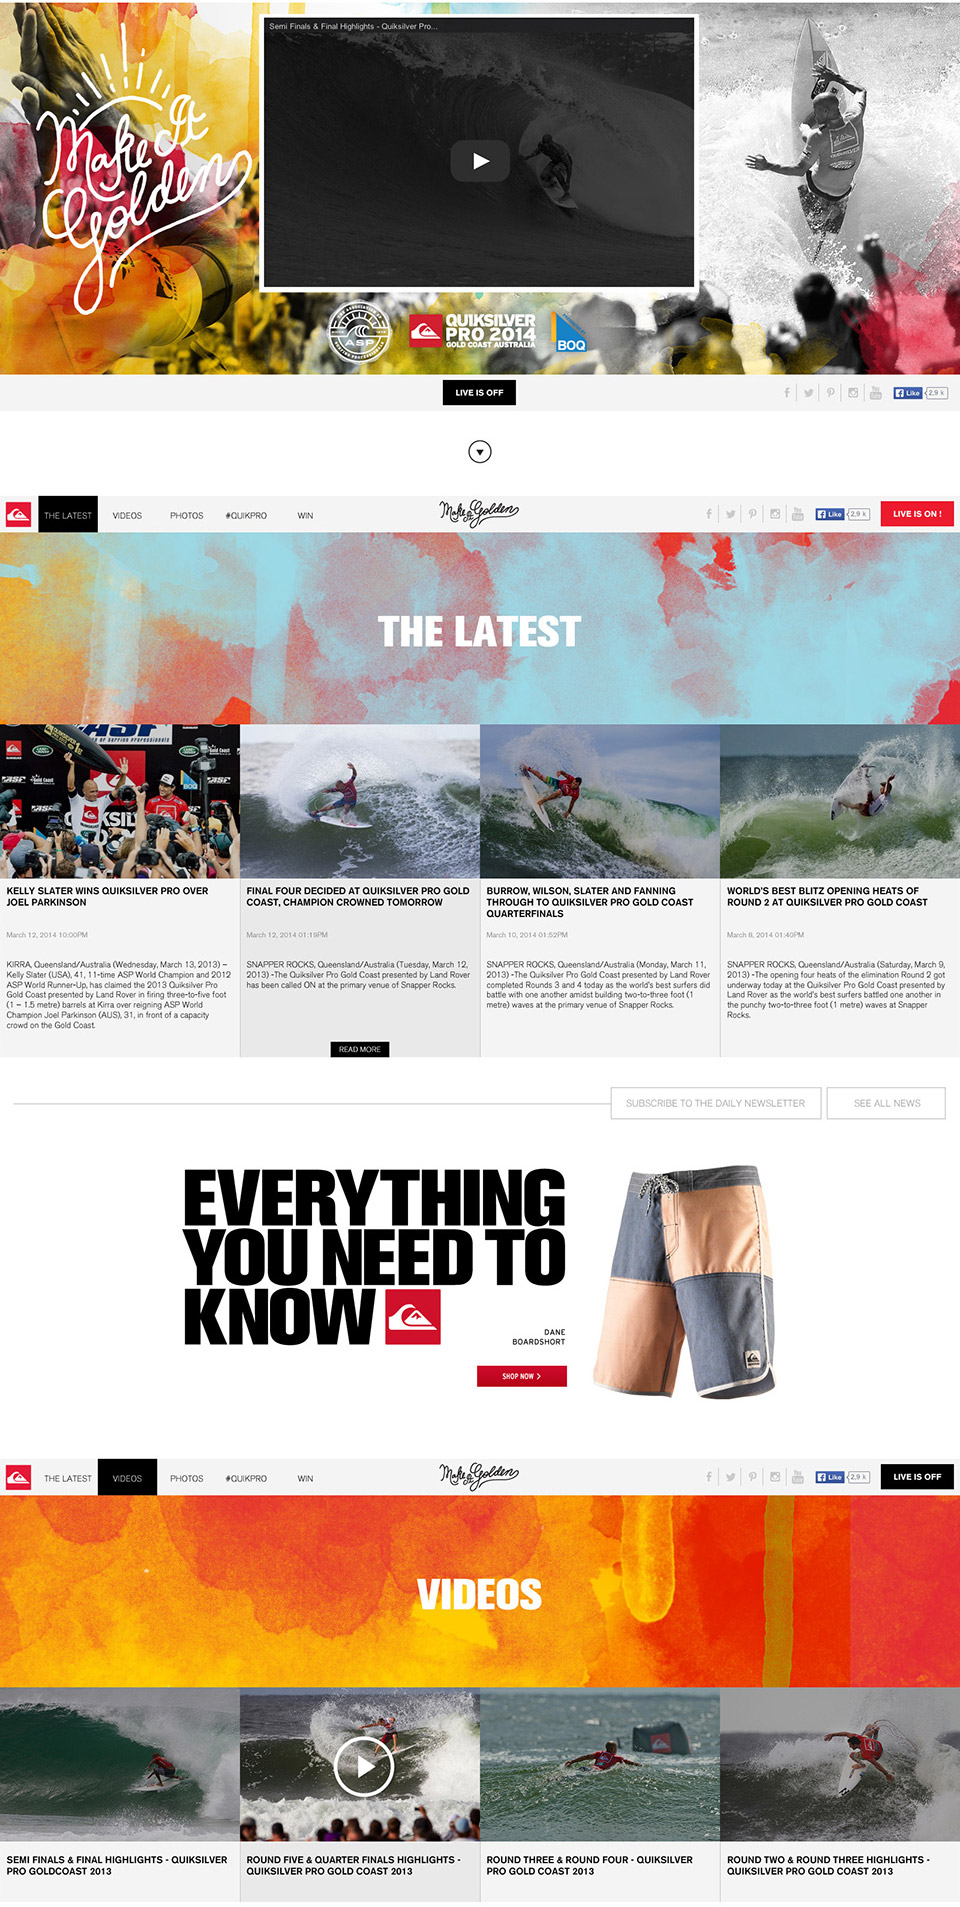 Quiksilver Gold Coast/ WSL Event - Event user Experience DesignArt Direction: WSL Creative team